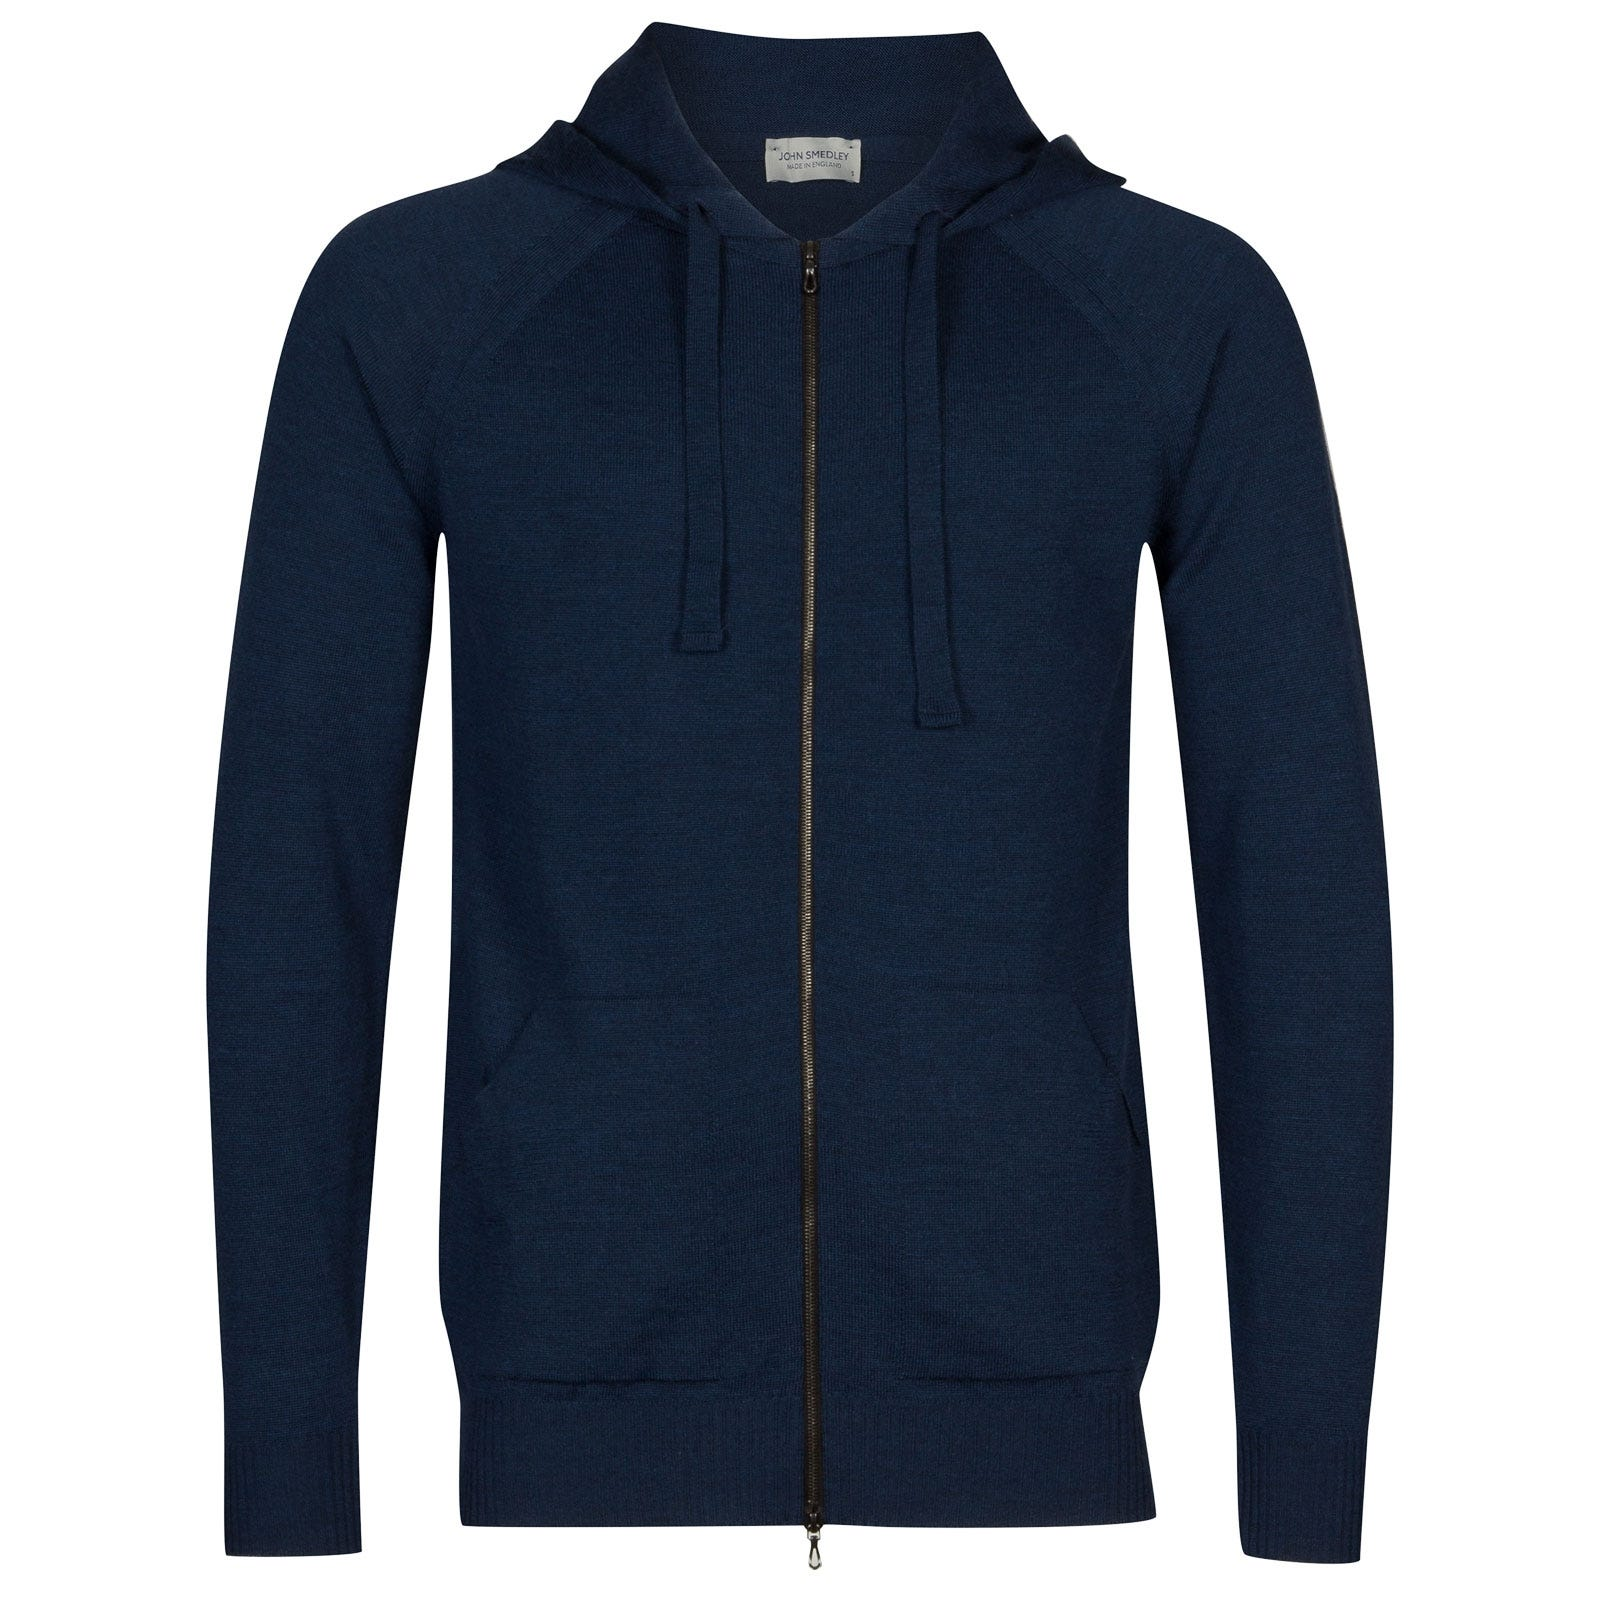 John Smedley Reservoir Merino Wool Jacket in Indigo-XL